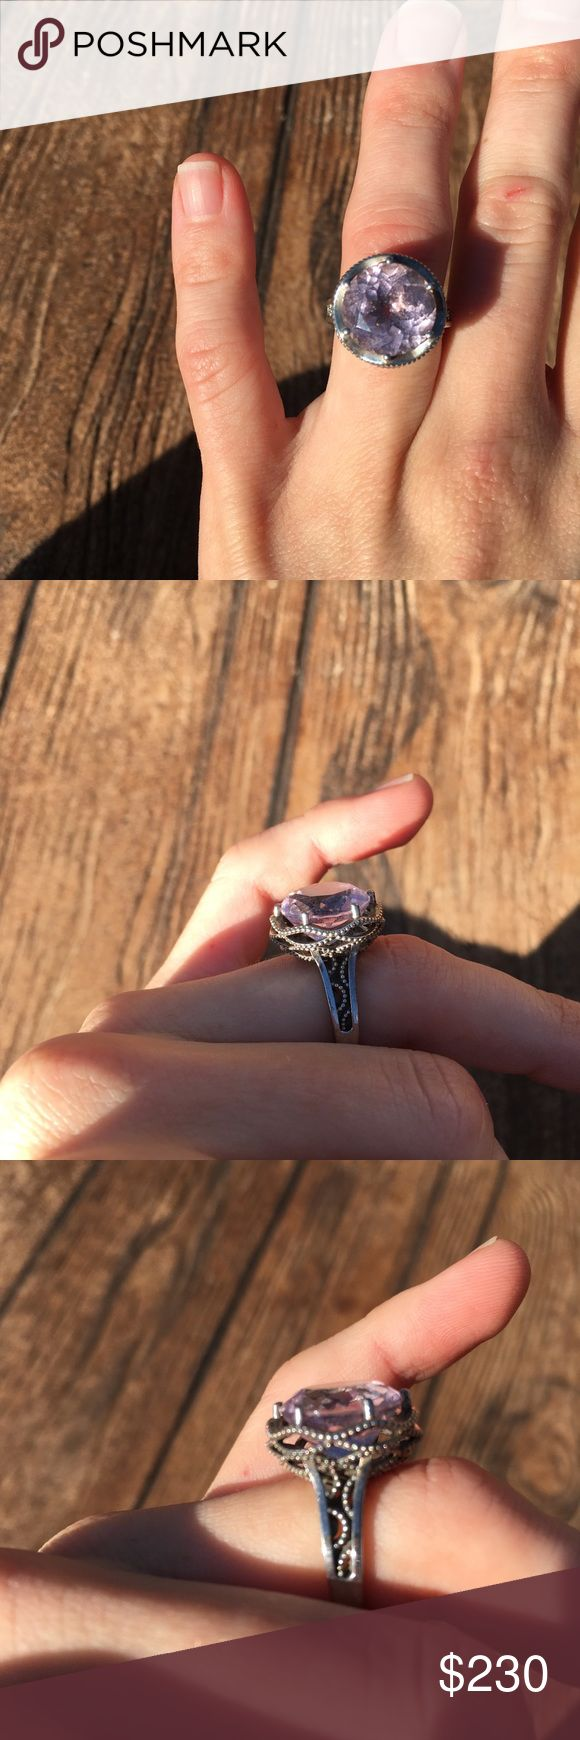 (Tacori) Lilac Silver / Gold Ring Tacori brand. Silver band with gold embellishment on the sides. Best fit a size 3 or even smaller. (I do not have a ring sizer) very small Ring. Light light wear. No trades. Pictures show true condition of ring.   #tacori #ring #lilac Tacori Jewelry Rings